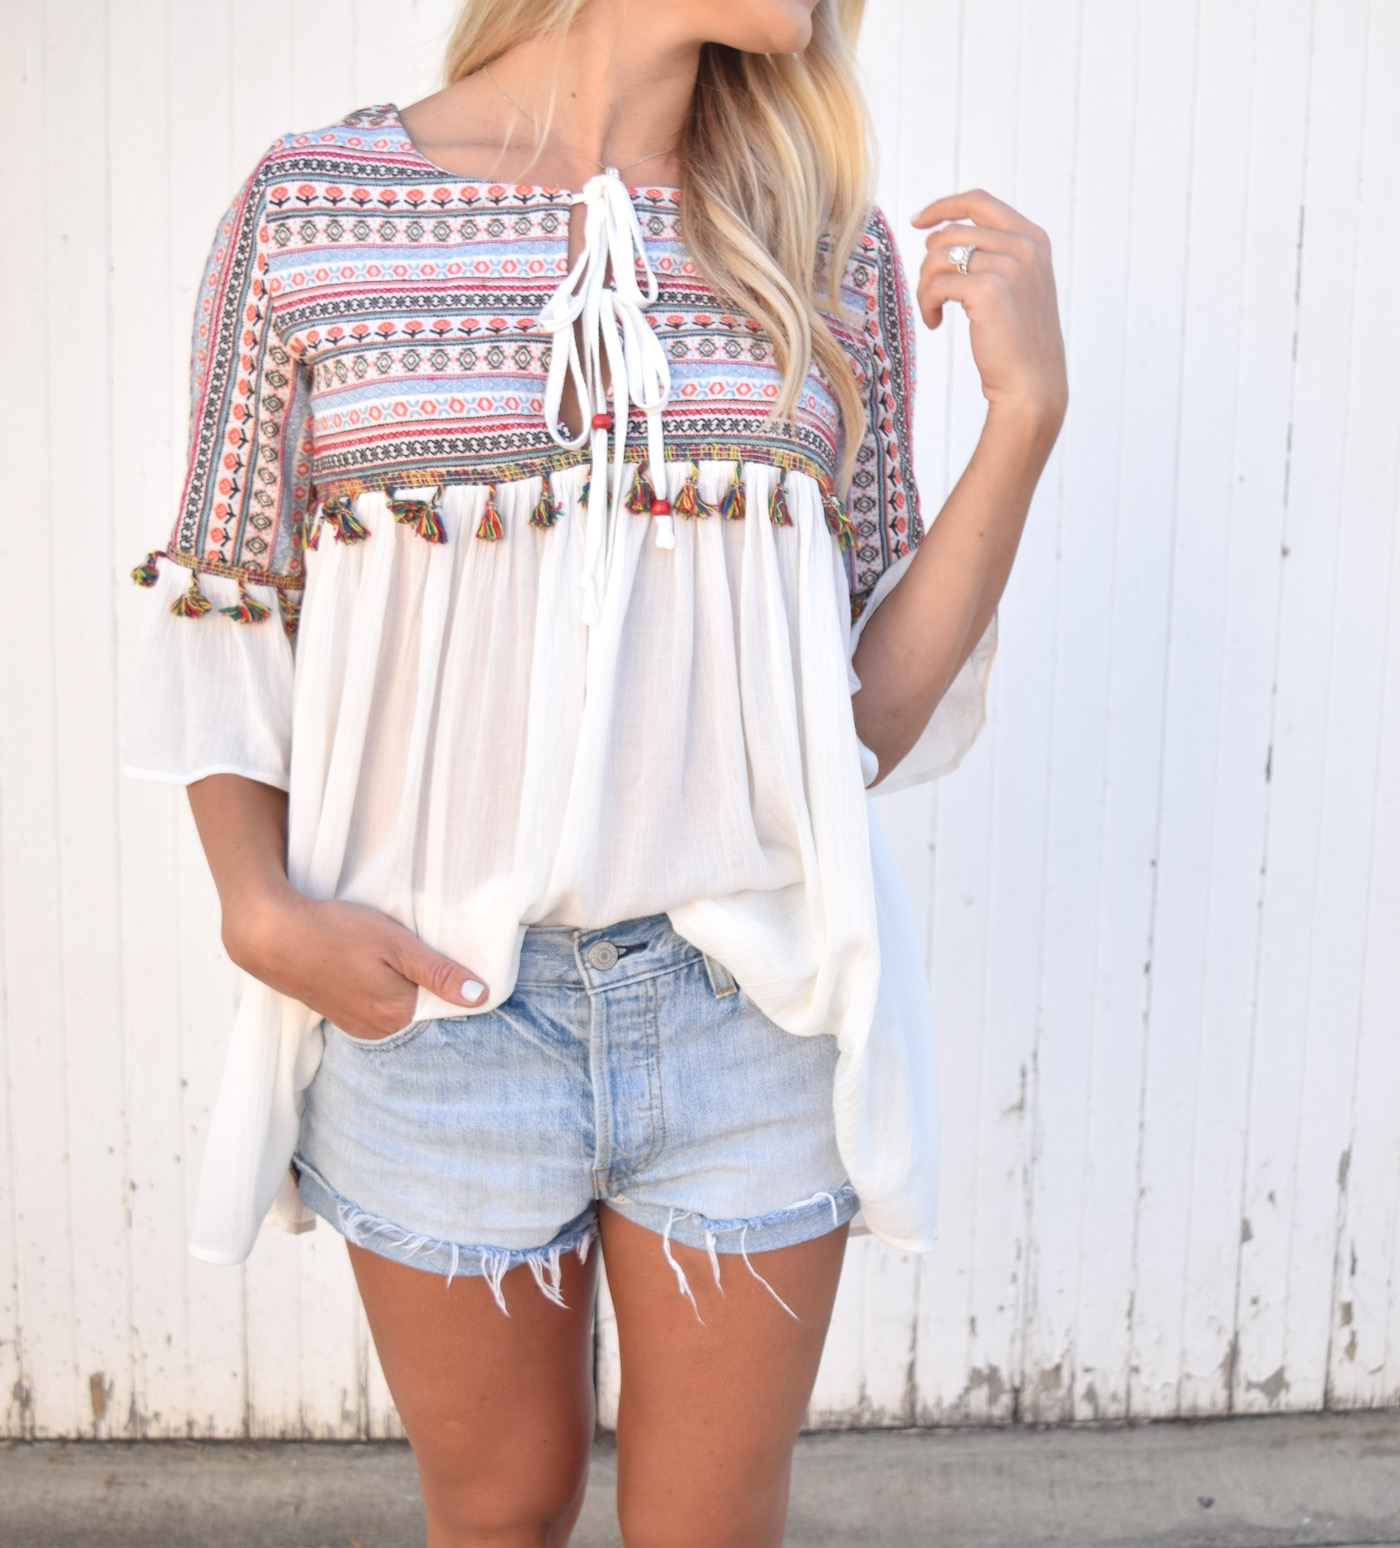 Embroidered Tassel Top from Make Me Chic